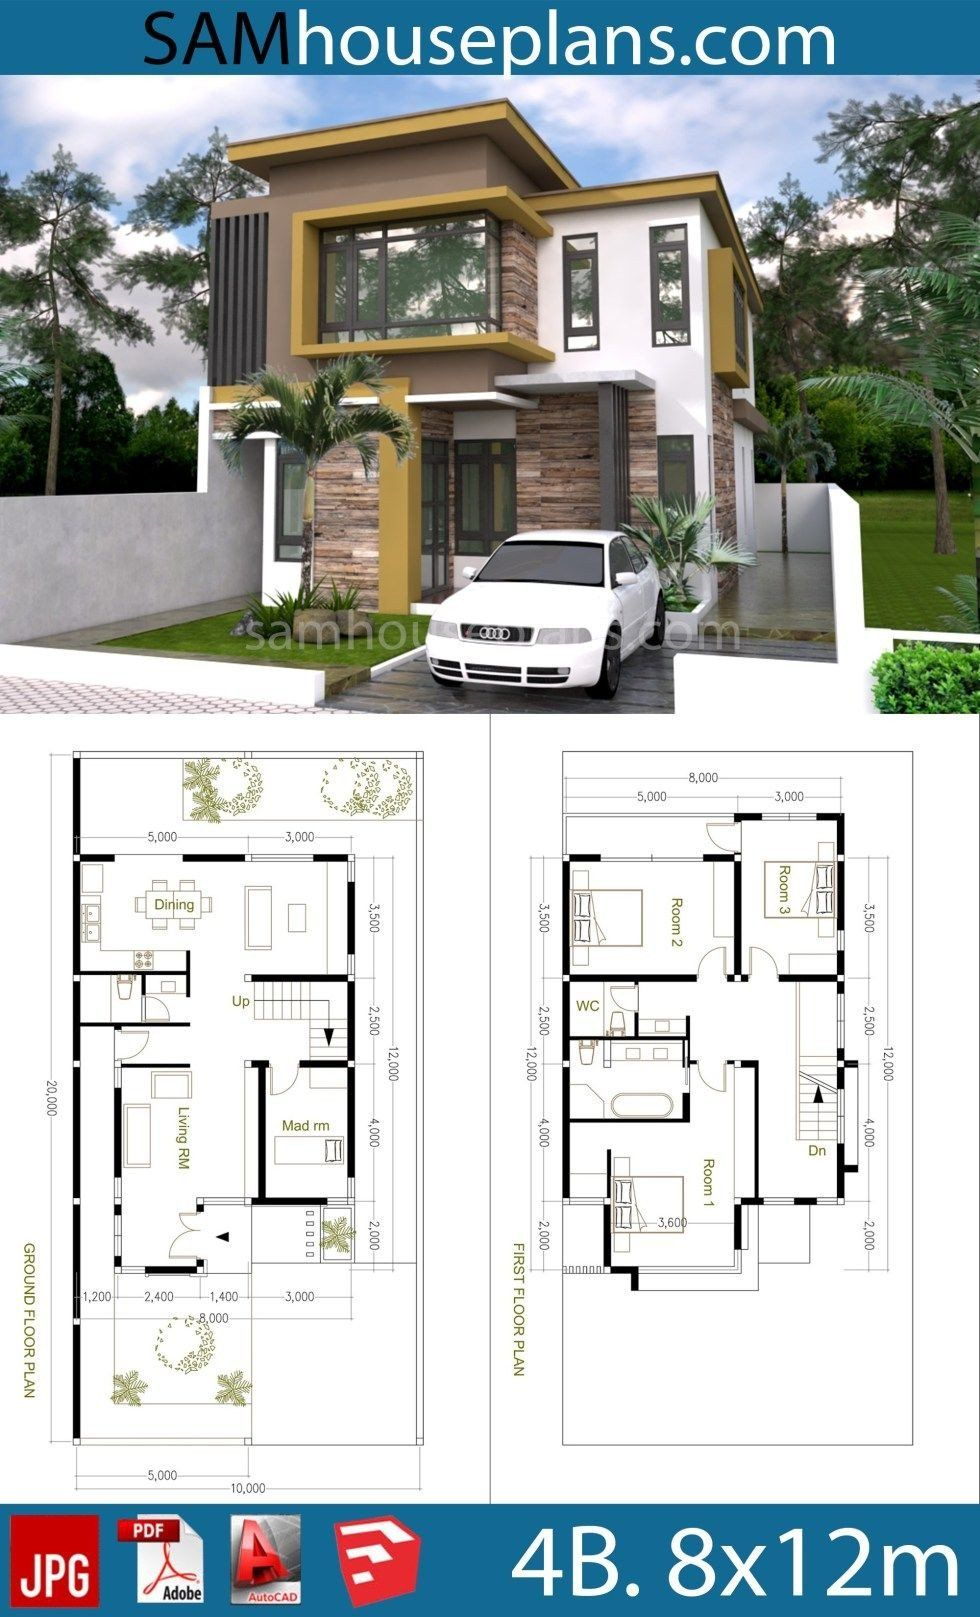 Modern House Building Plans House Plans 8x12m With 4 Bedrooms 2 Storey House Design Building Plans House Two Storey House Plans